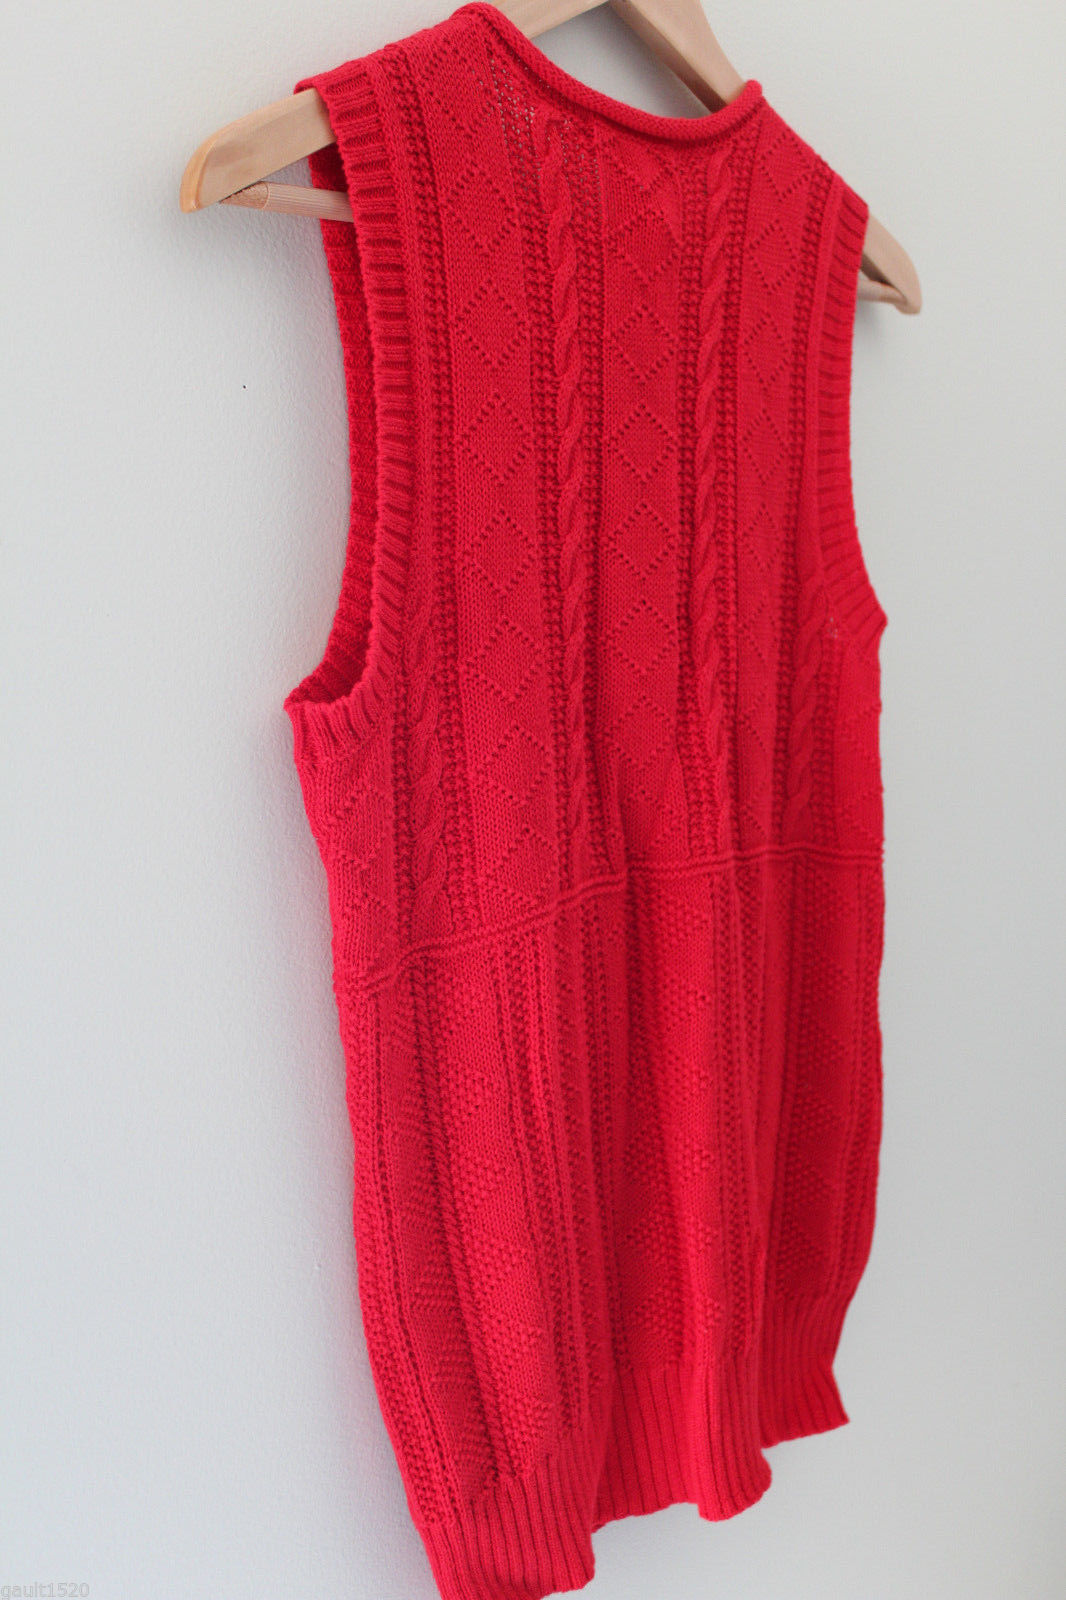 NWT LAUREN Ralph Lauren Red Linen Cotton Knit Sleeveless Sweater Vest M $100 image 8